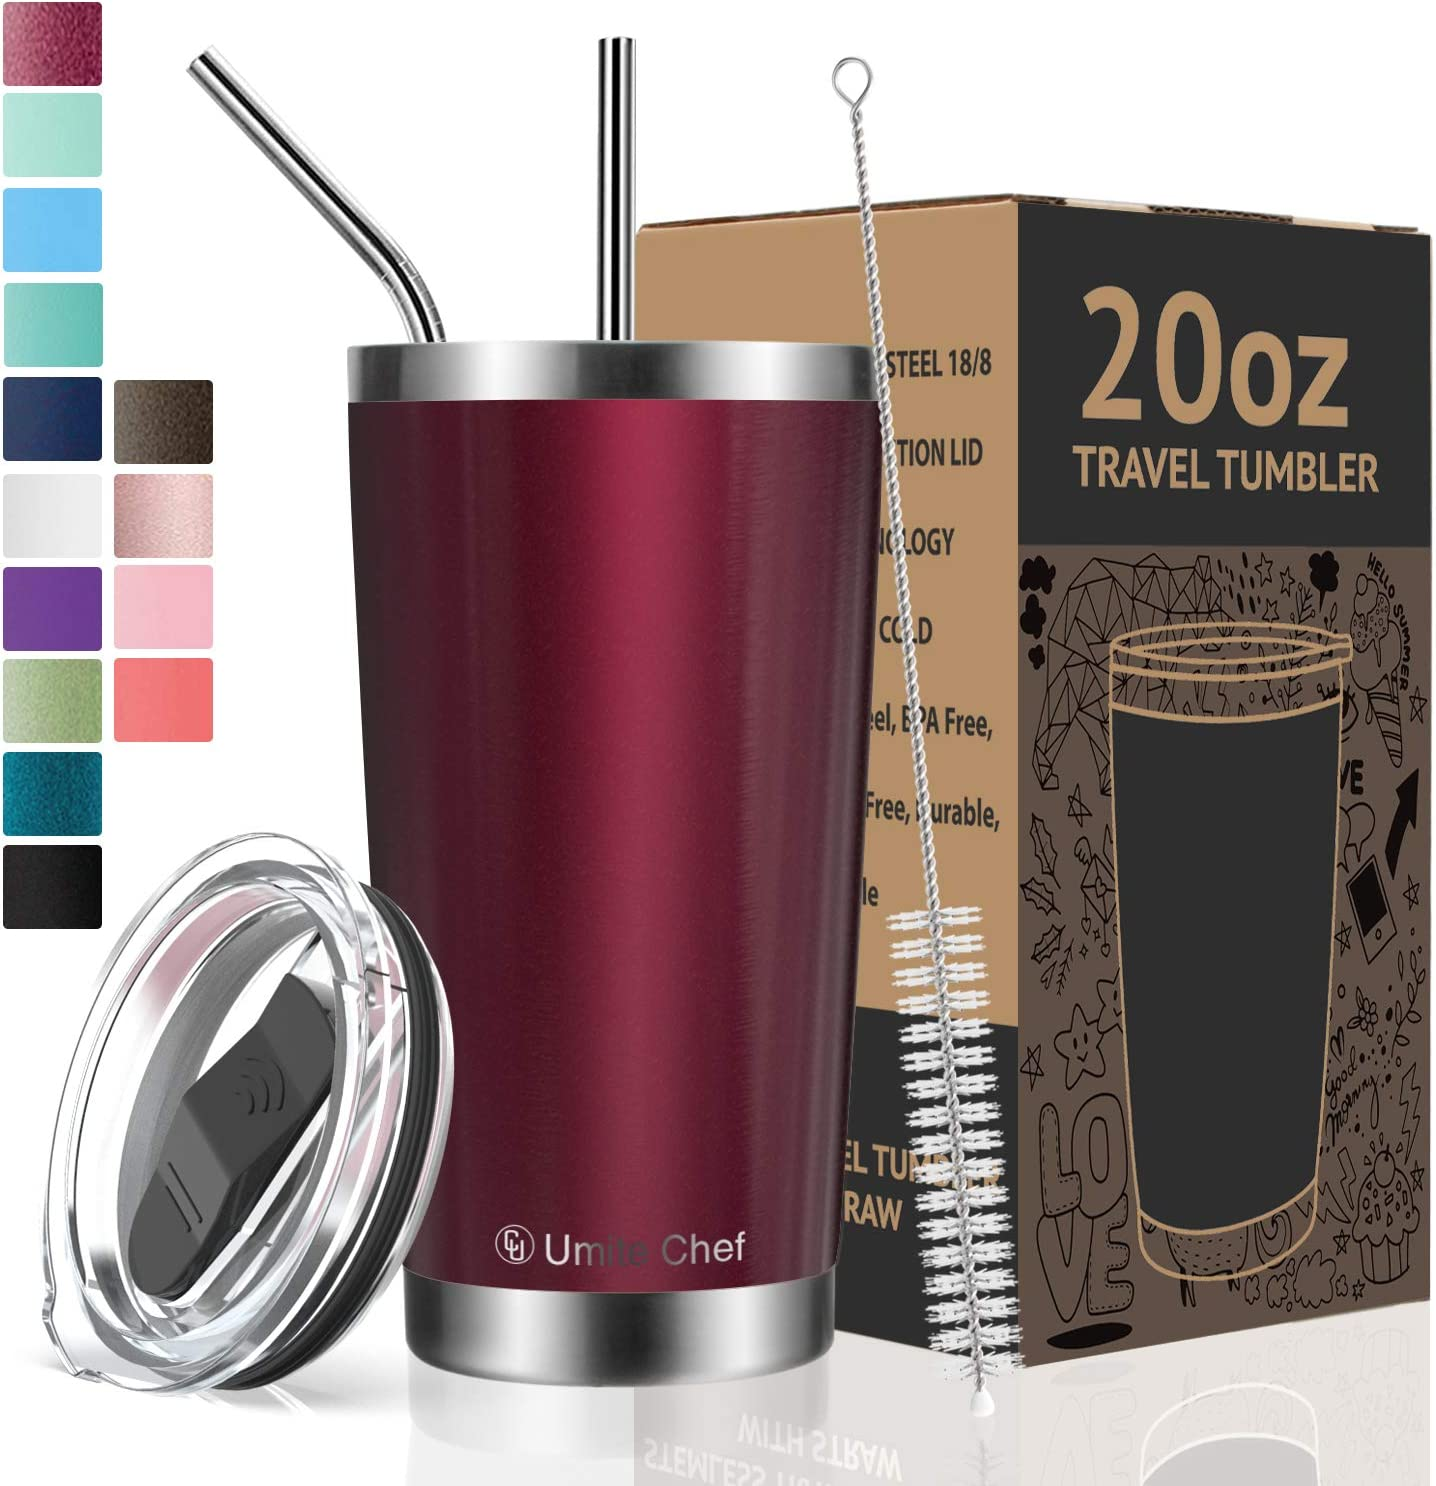 Umite Chef Tumbler Double Wall Stainless Steel Vacuum Insulated Travel Mug with Lid, Insulated Coffee Cup, 2 Straws, for Home, Outdoor, Office, School, Ice Drink, Hot Beverage (Wine Red, 20 oz)